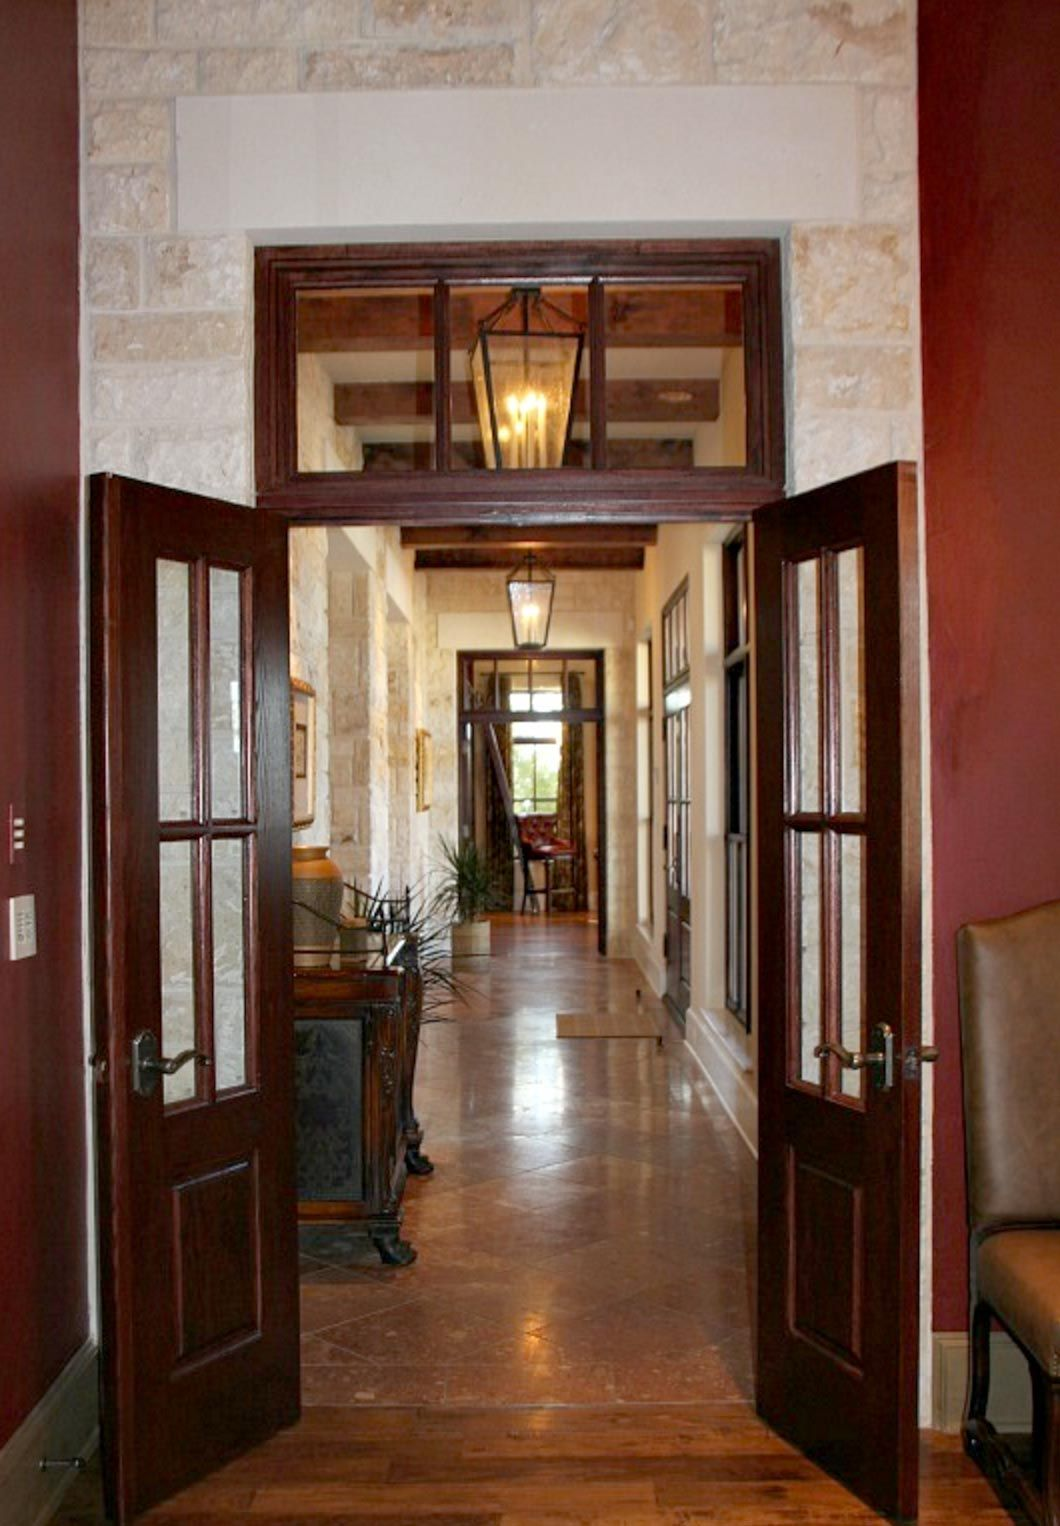 Small Custom Homes Texas Ranch Style Homes Custom Ranch Homes Design Interior Designs: Gallery Looking From Dining Into Living Room Features A Transom